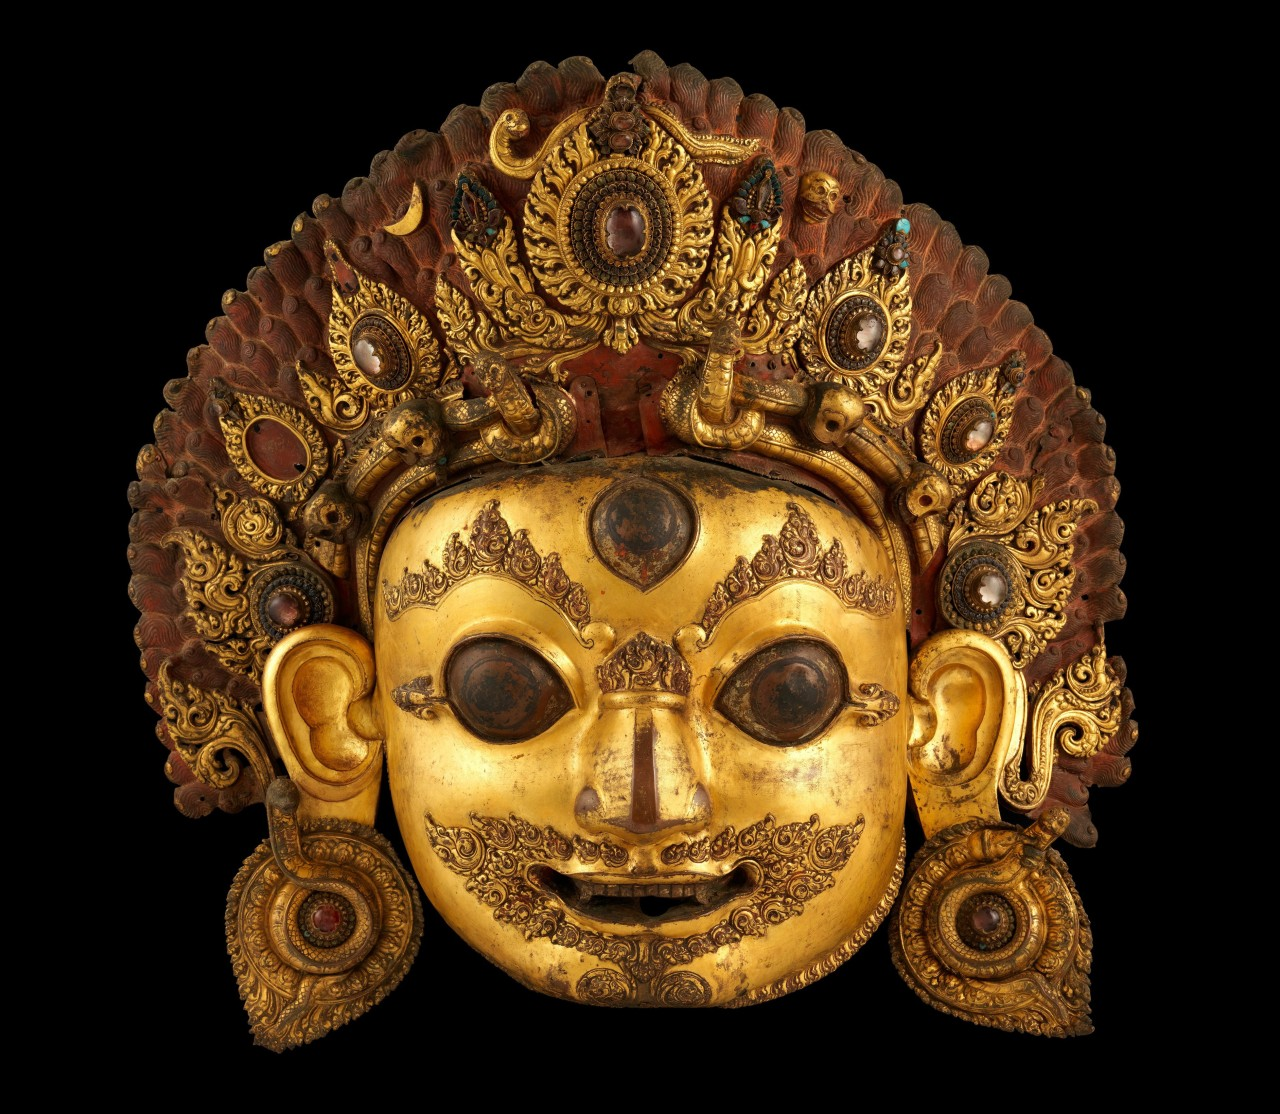 Head of Bhairava, the Wrathful Form of Shiva  16th century Nepal Gilt copper with rock crystal and paint